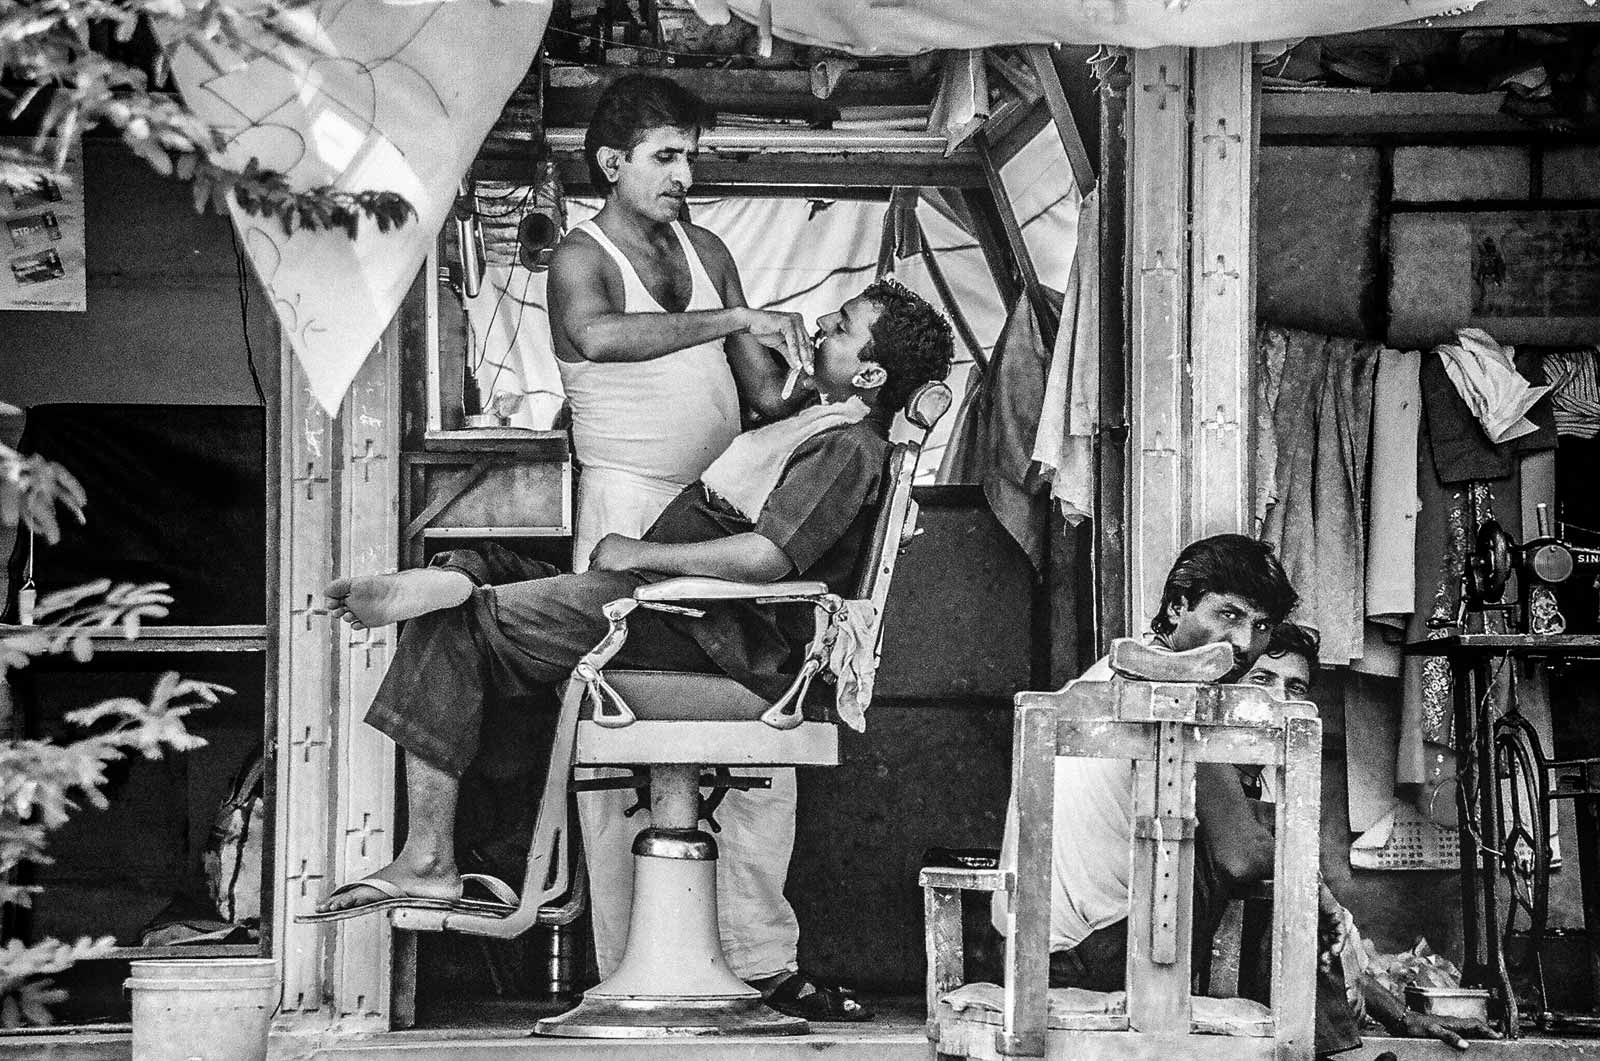 Barber working outdoors